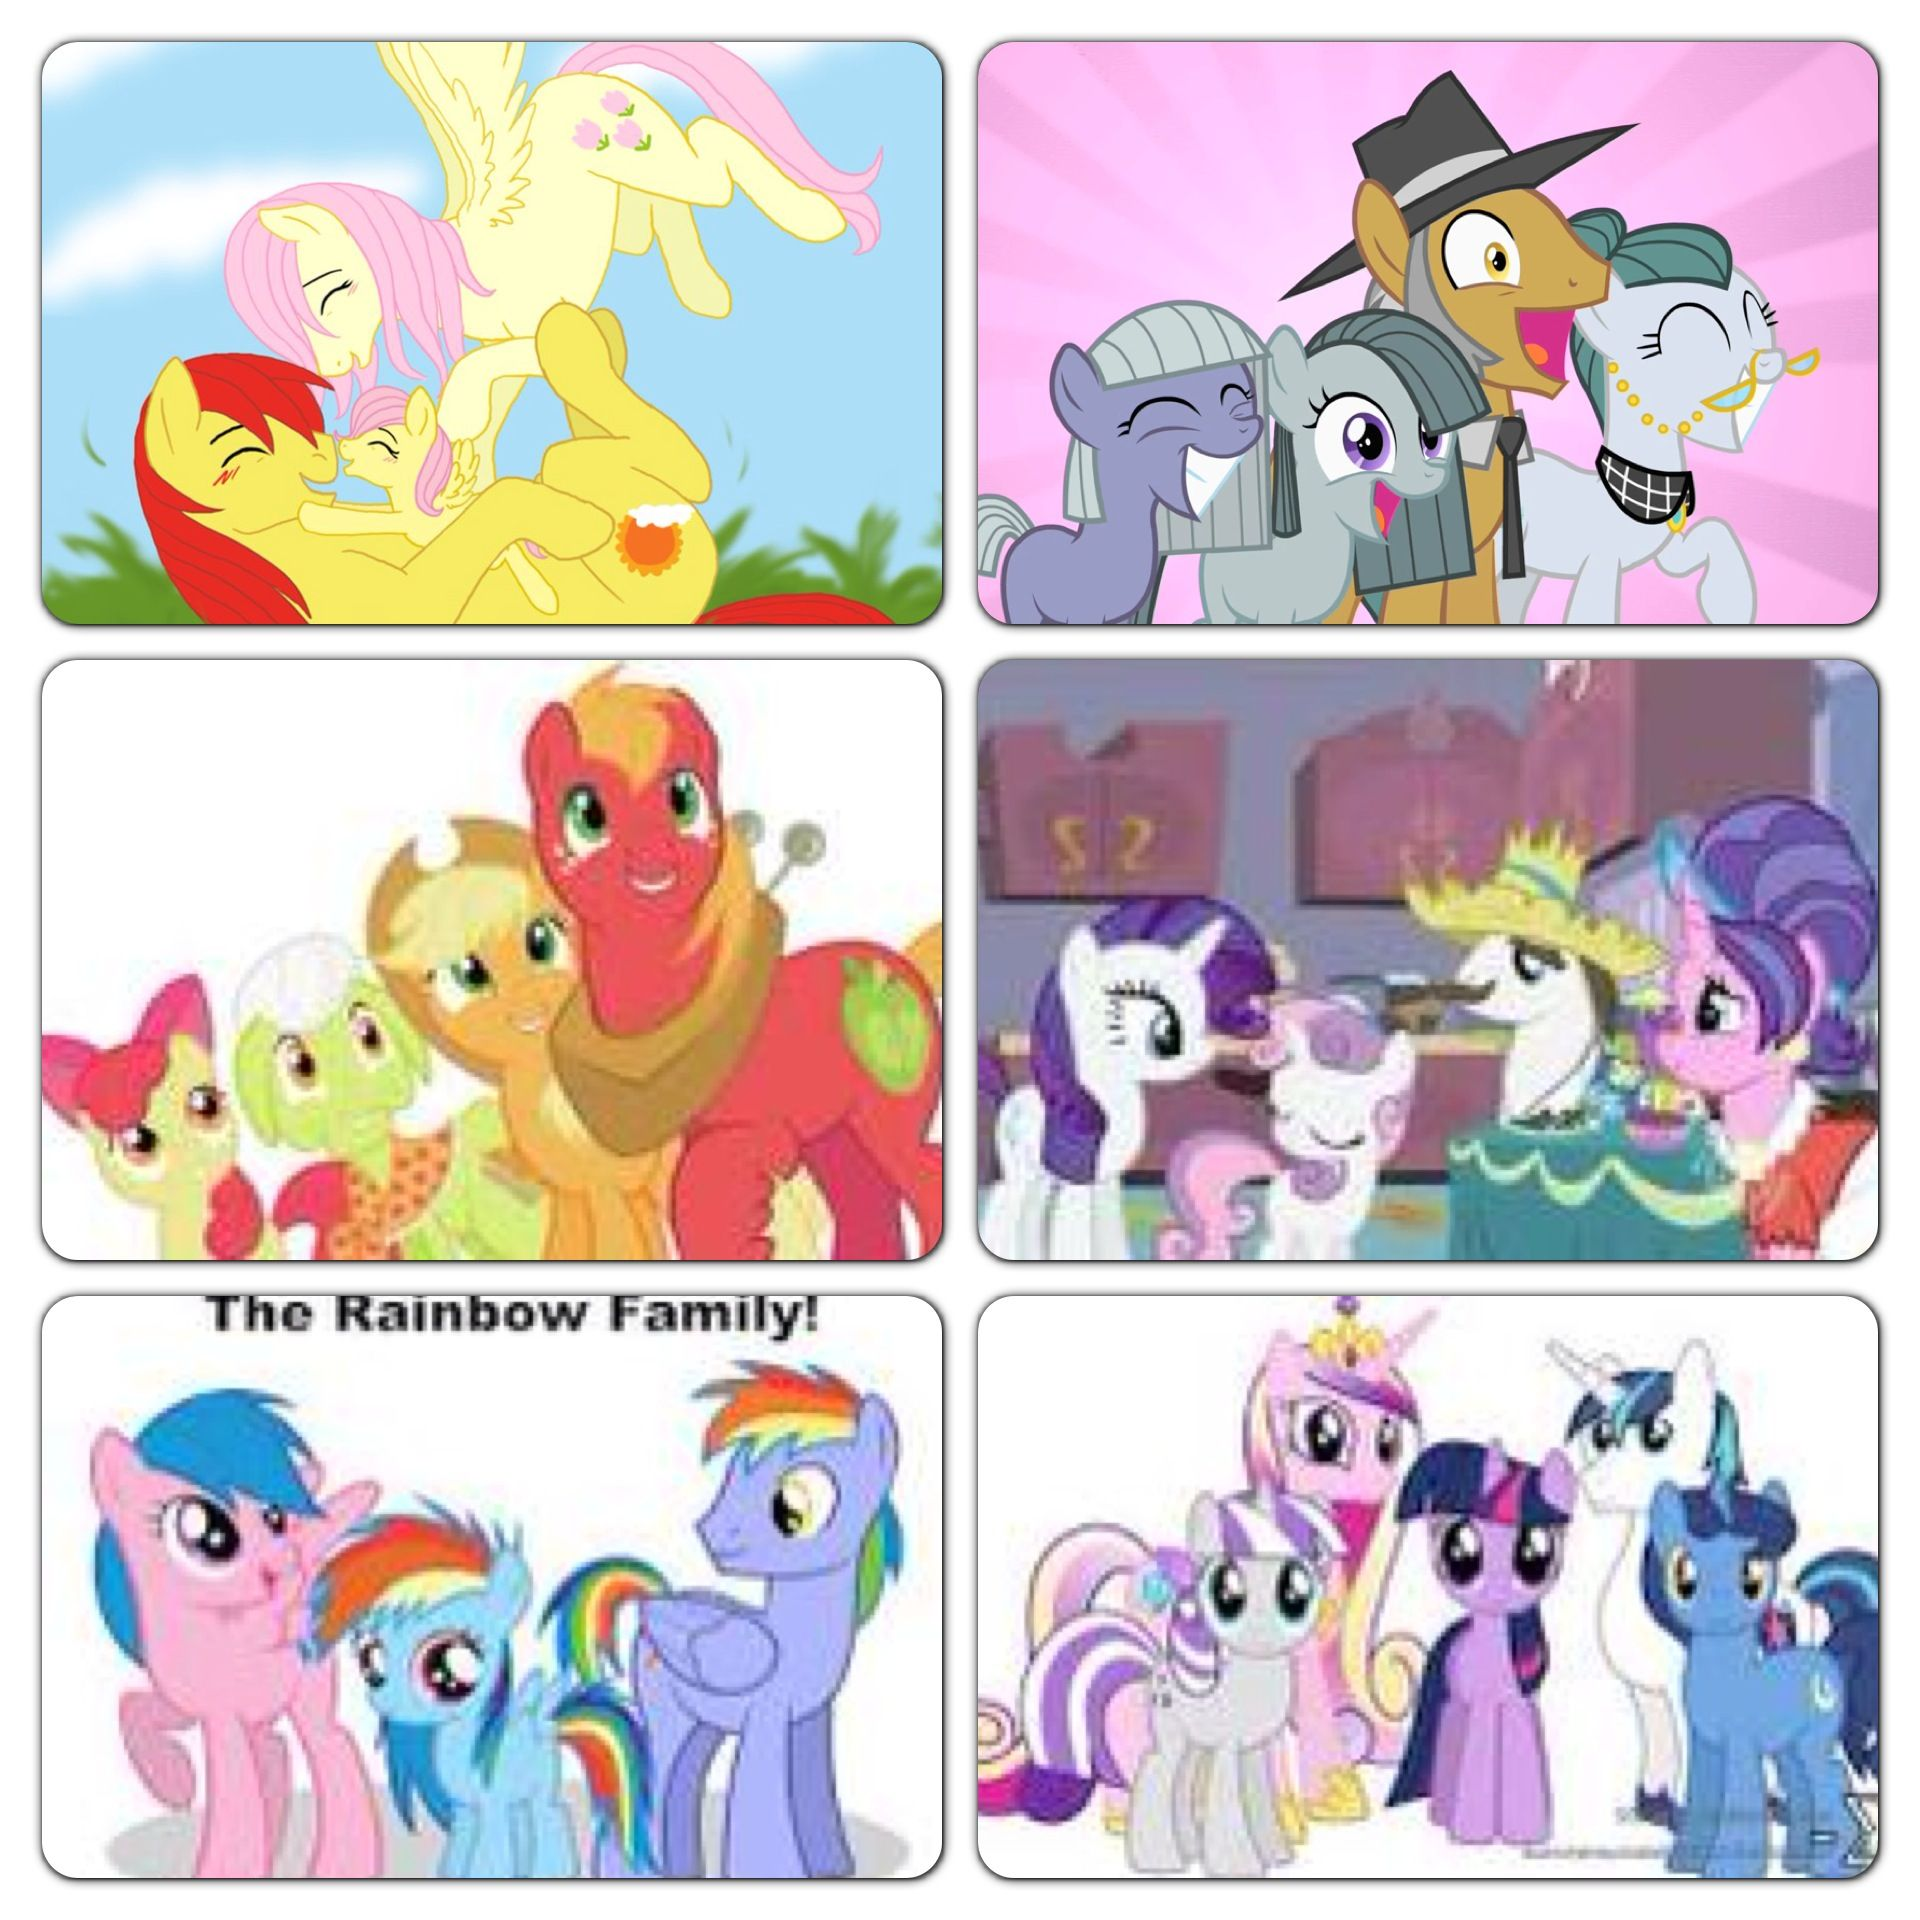 That Is Not Rainbows Parents And That Is Not Fluttershy Parents